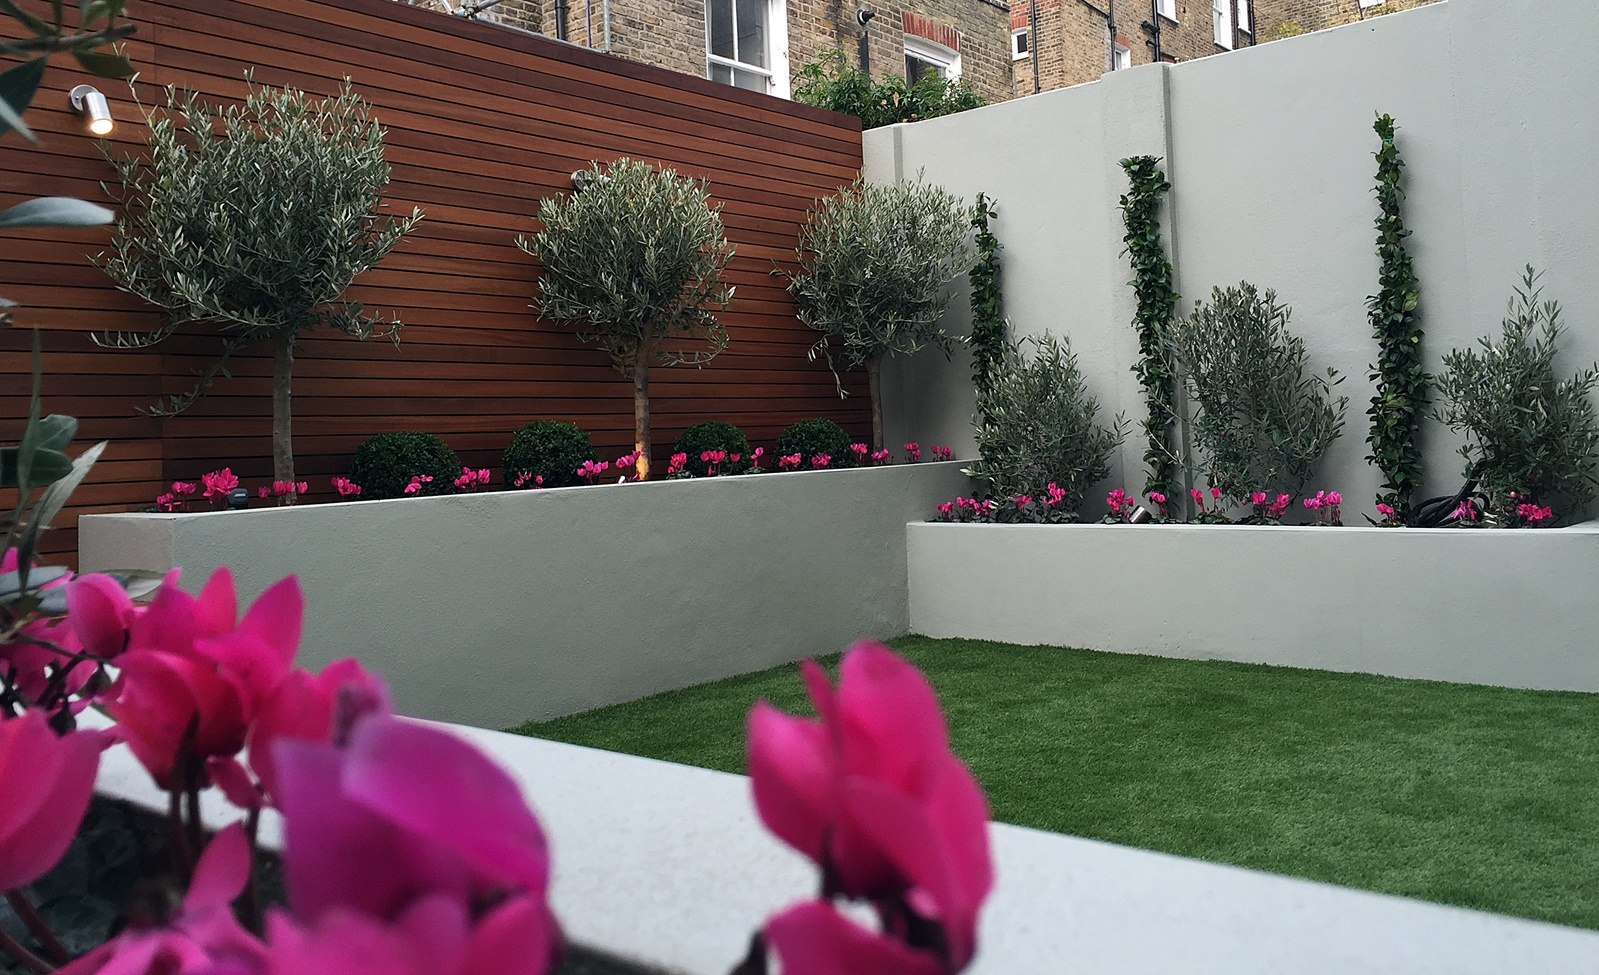 simple modern court yard garden designer battersea fulham chelsea claphm dulwich london